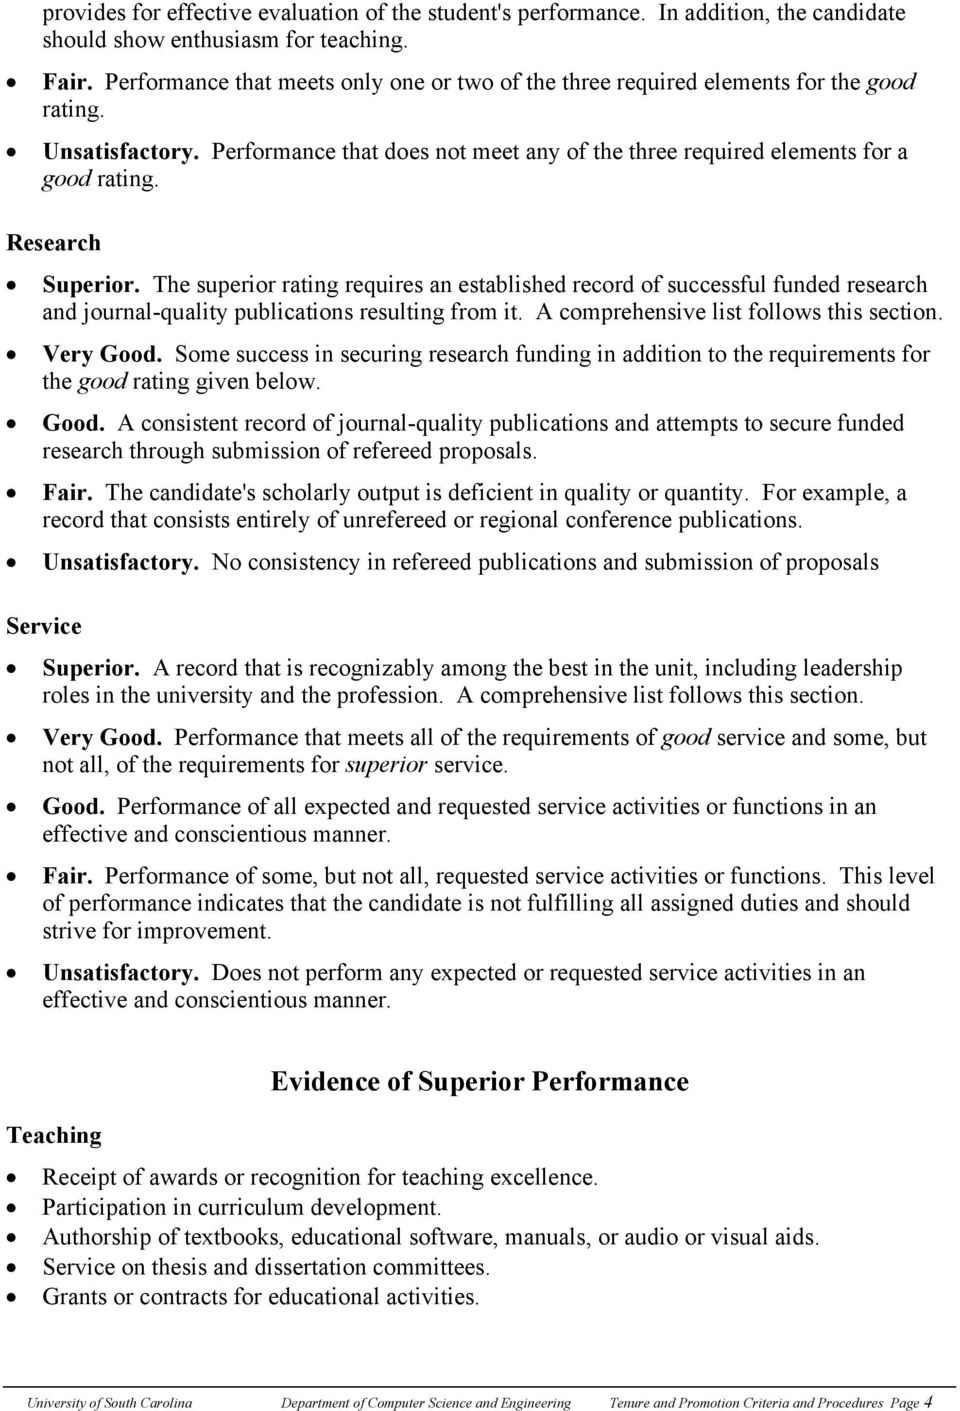 Research Superior. The superior rating requires an established record of successful funded research and journal-quality publications resulting from it. A comprehensive list follows this section.